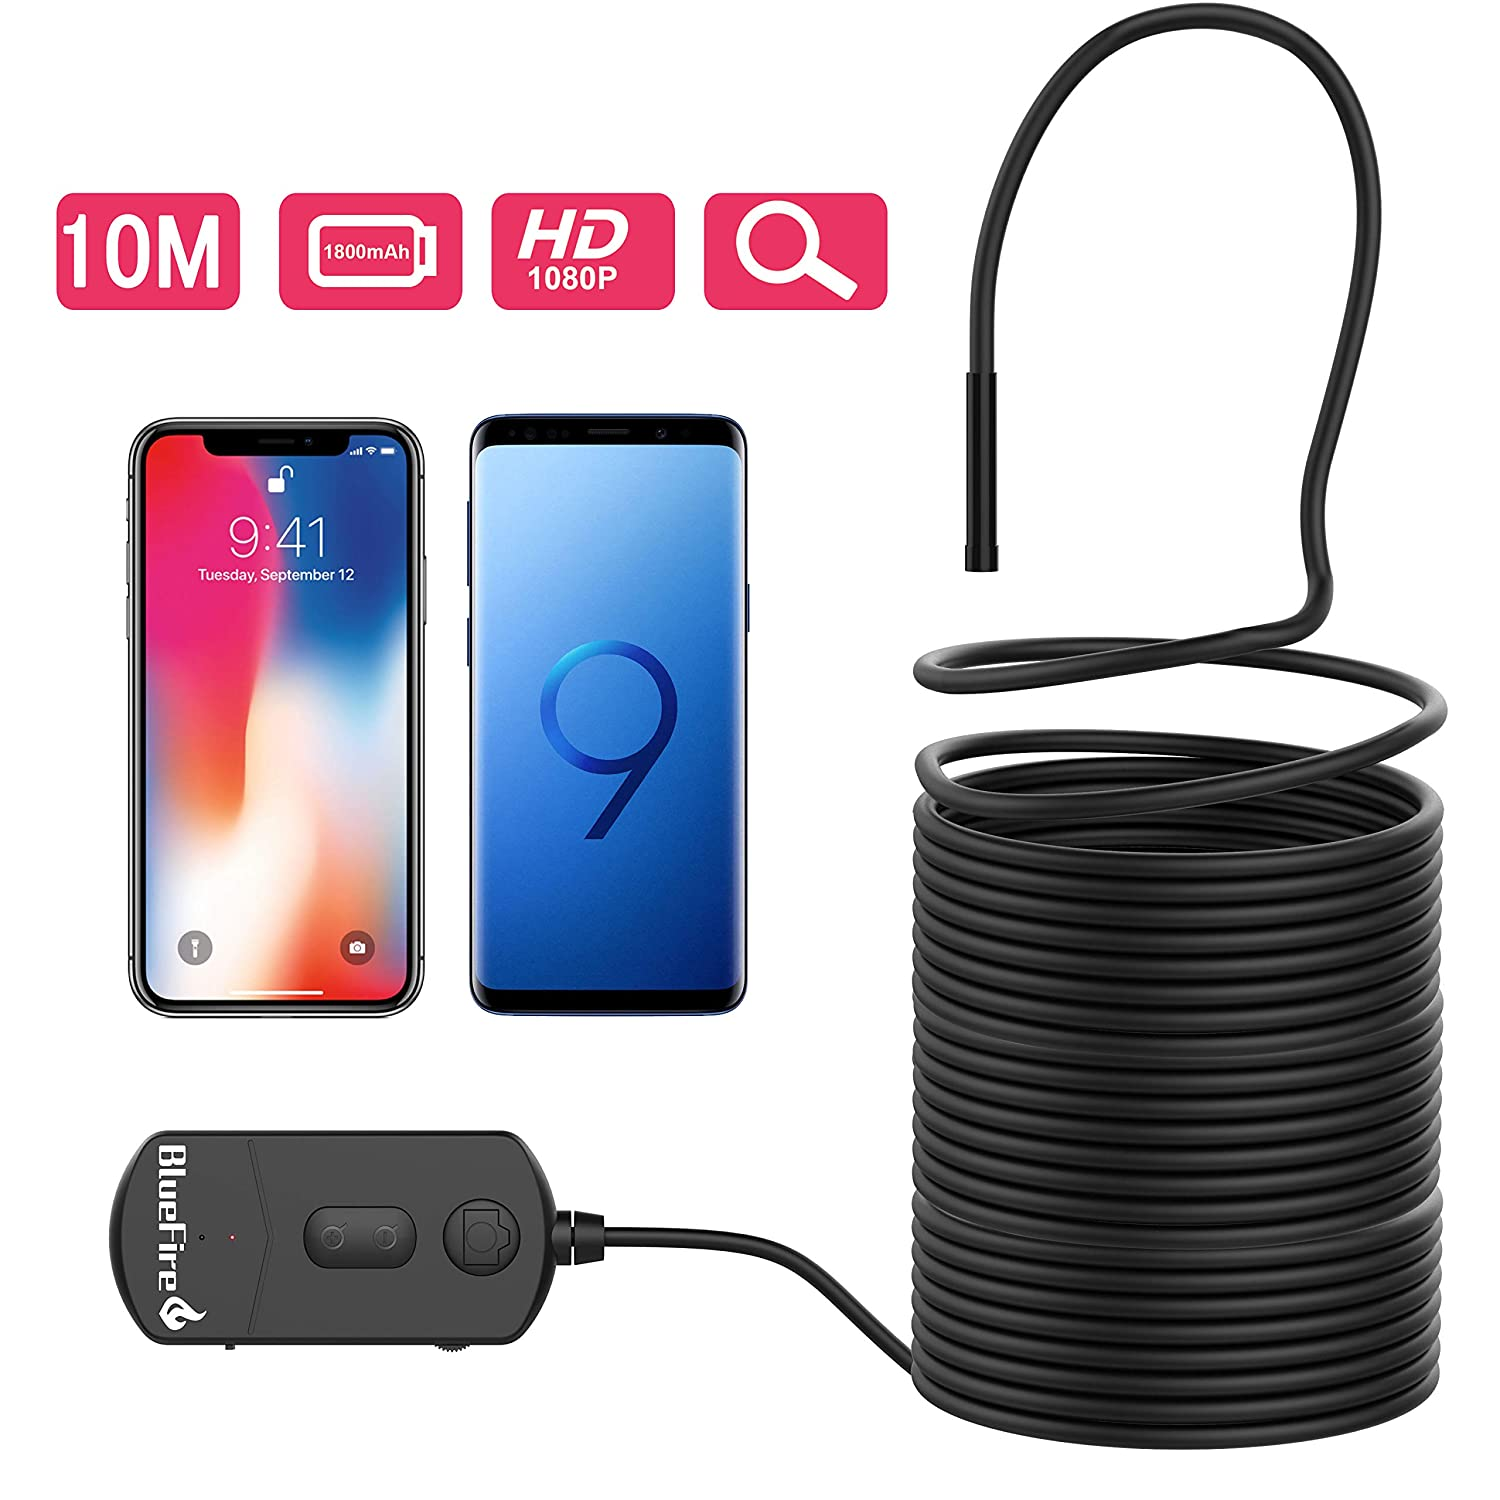 BlueFire WiFi Endoscope Camera, 1080P 8.2mm Zoomable Picture 1800mAh Battery 2MP Semi-rigid Wireless HD Inspection Camera, Borescope Snake Camera for Android and iOS Smartphone(15M) ZN85BF-UK-123